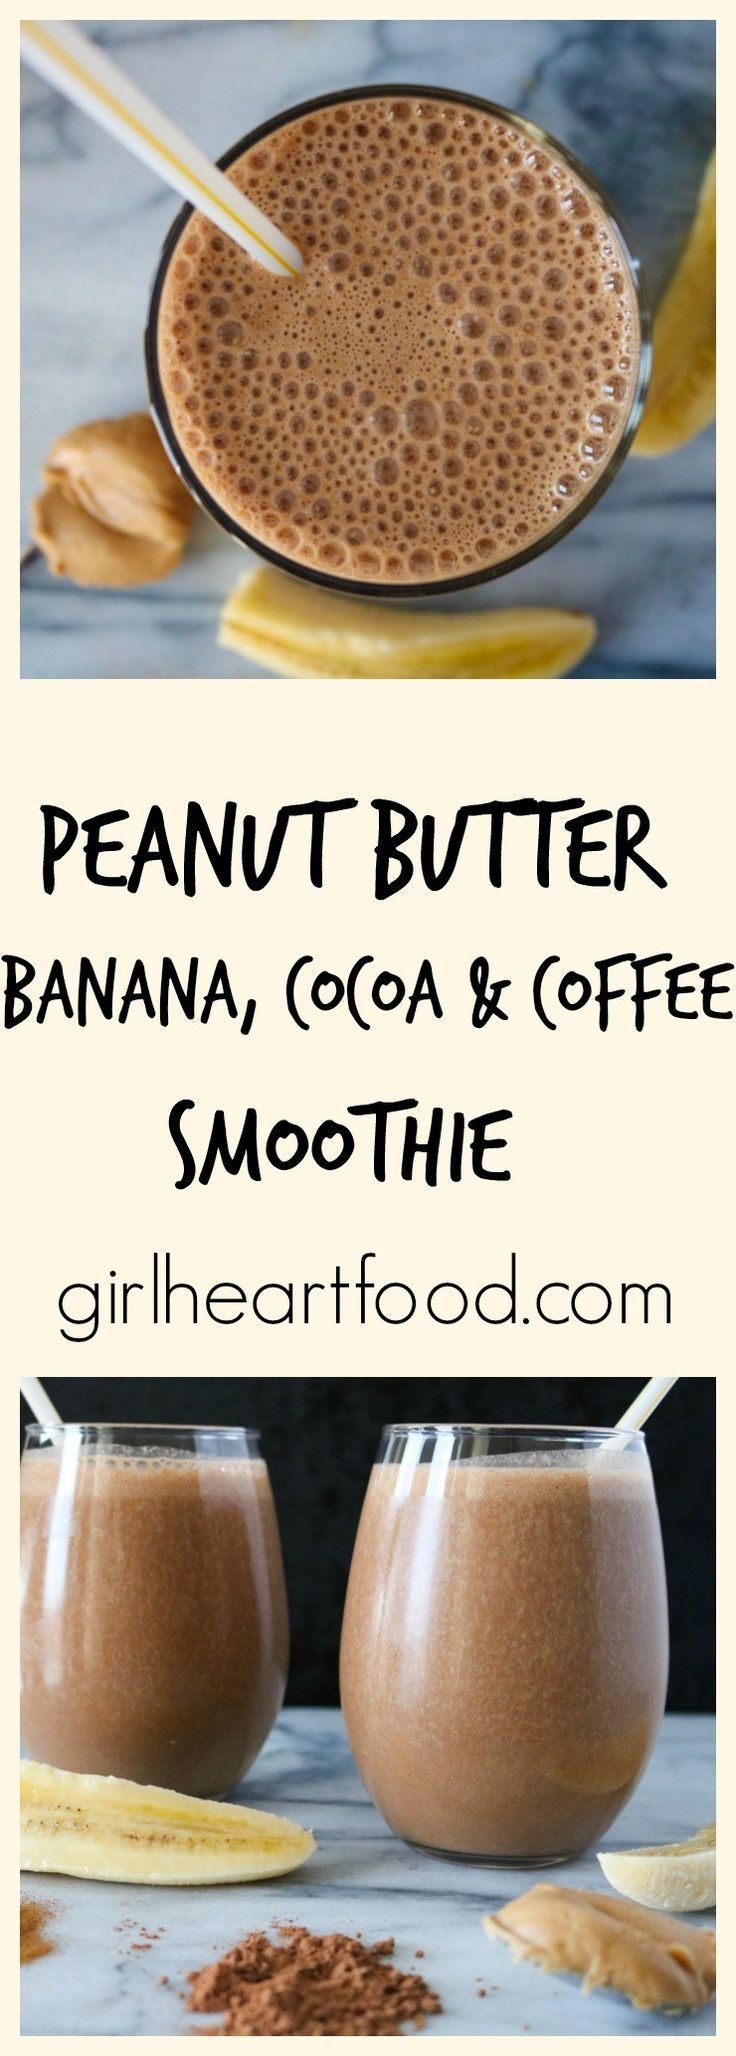 Peanut Butter, Banana, Cocoa and Coffee Smoothie